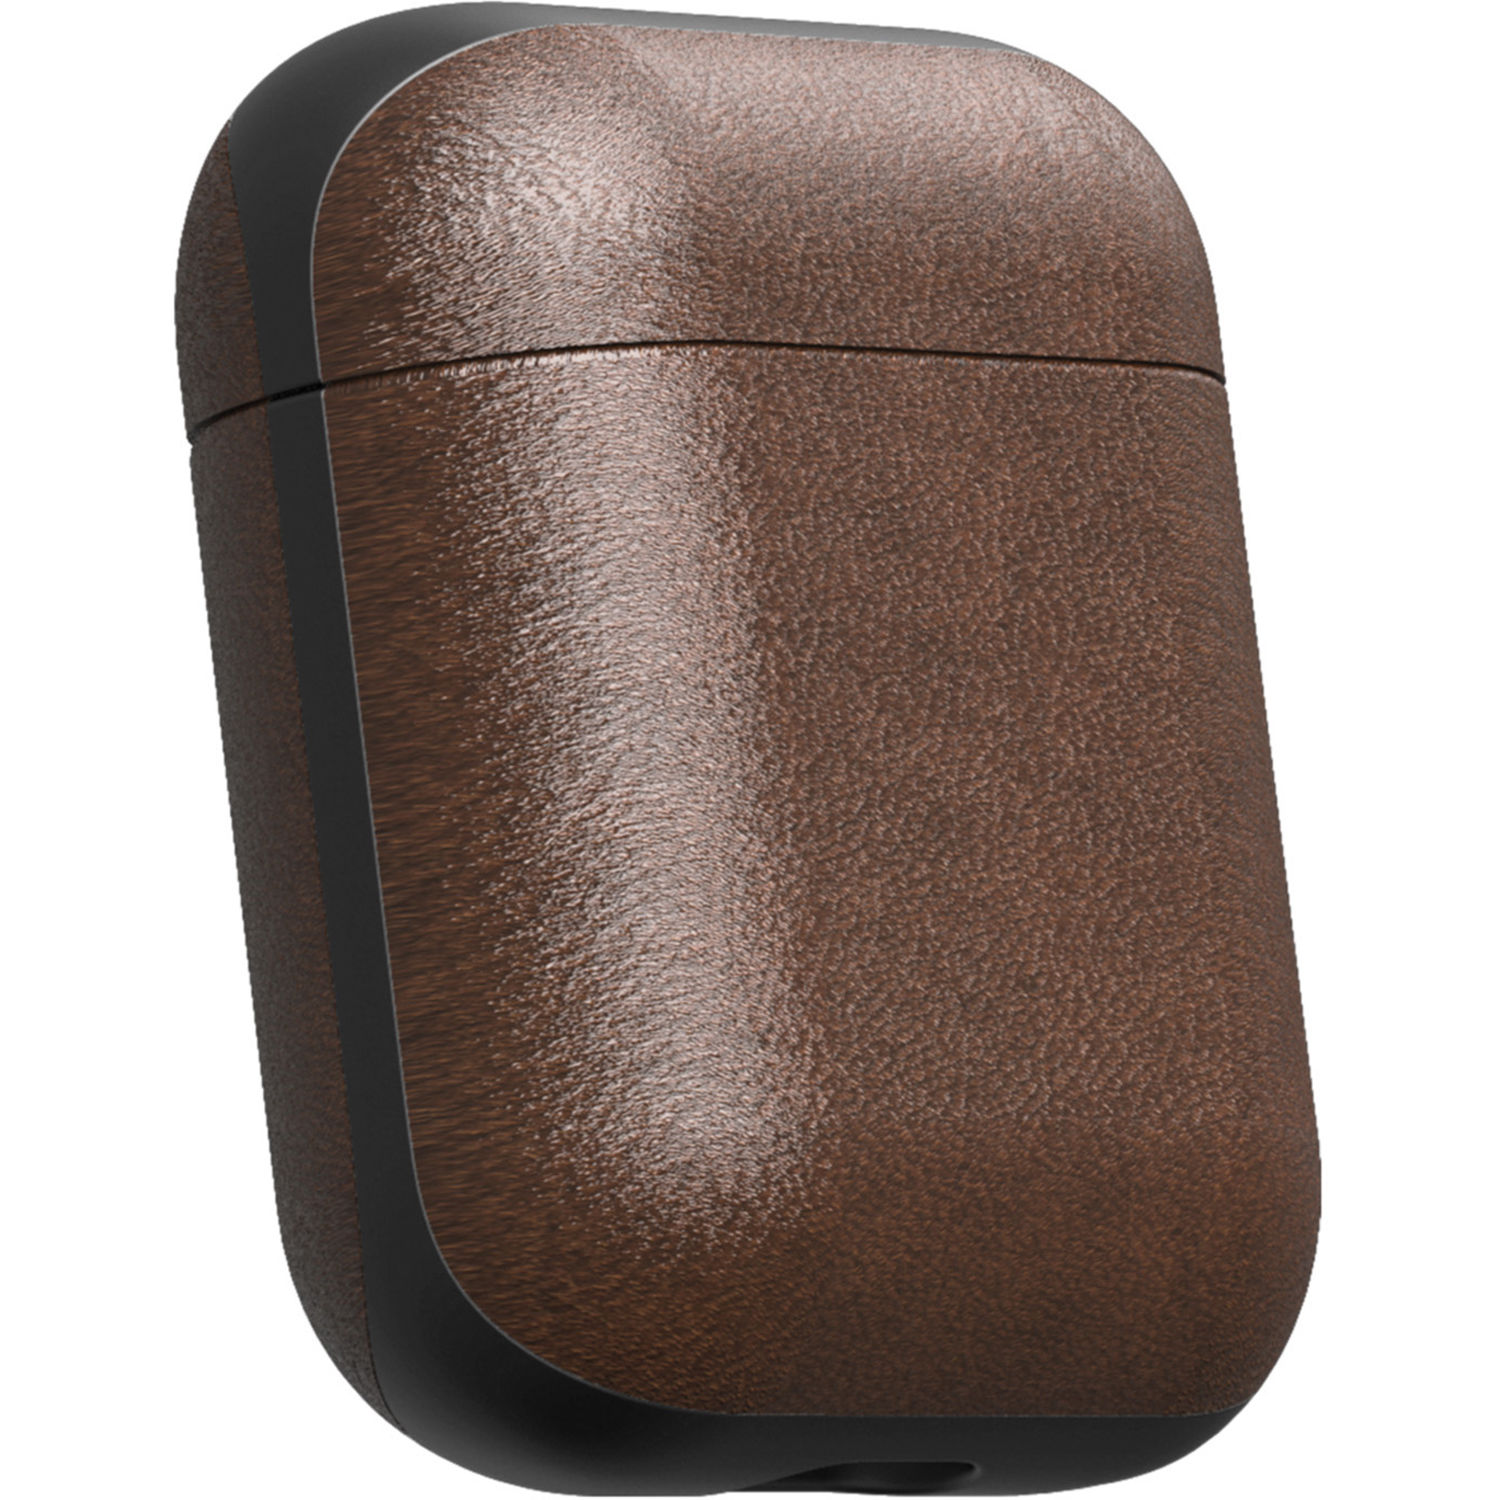 separation shoes 72874 73200 Nomad Rugged Case for AirPods (Natural Brown)